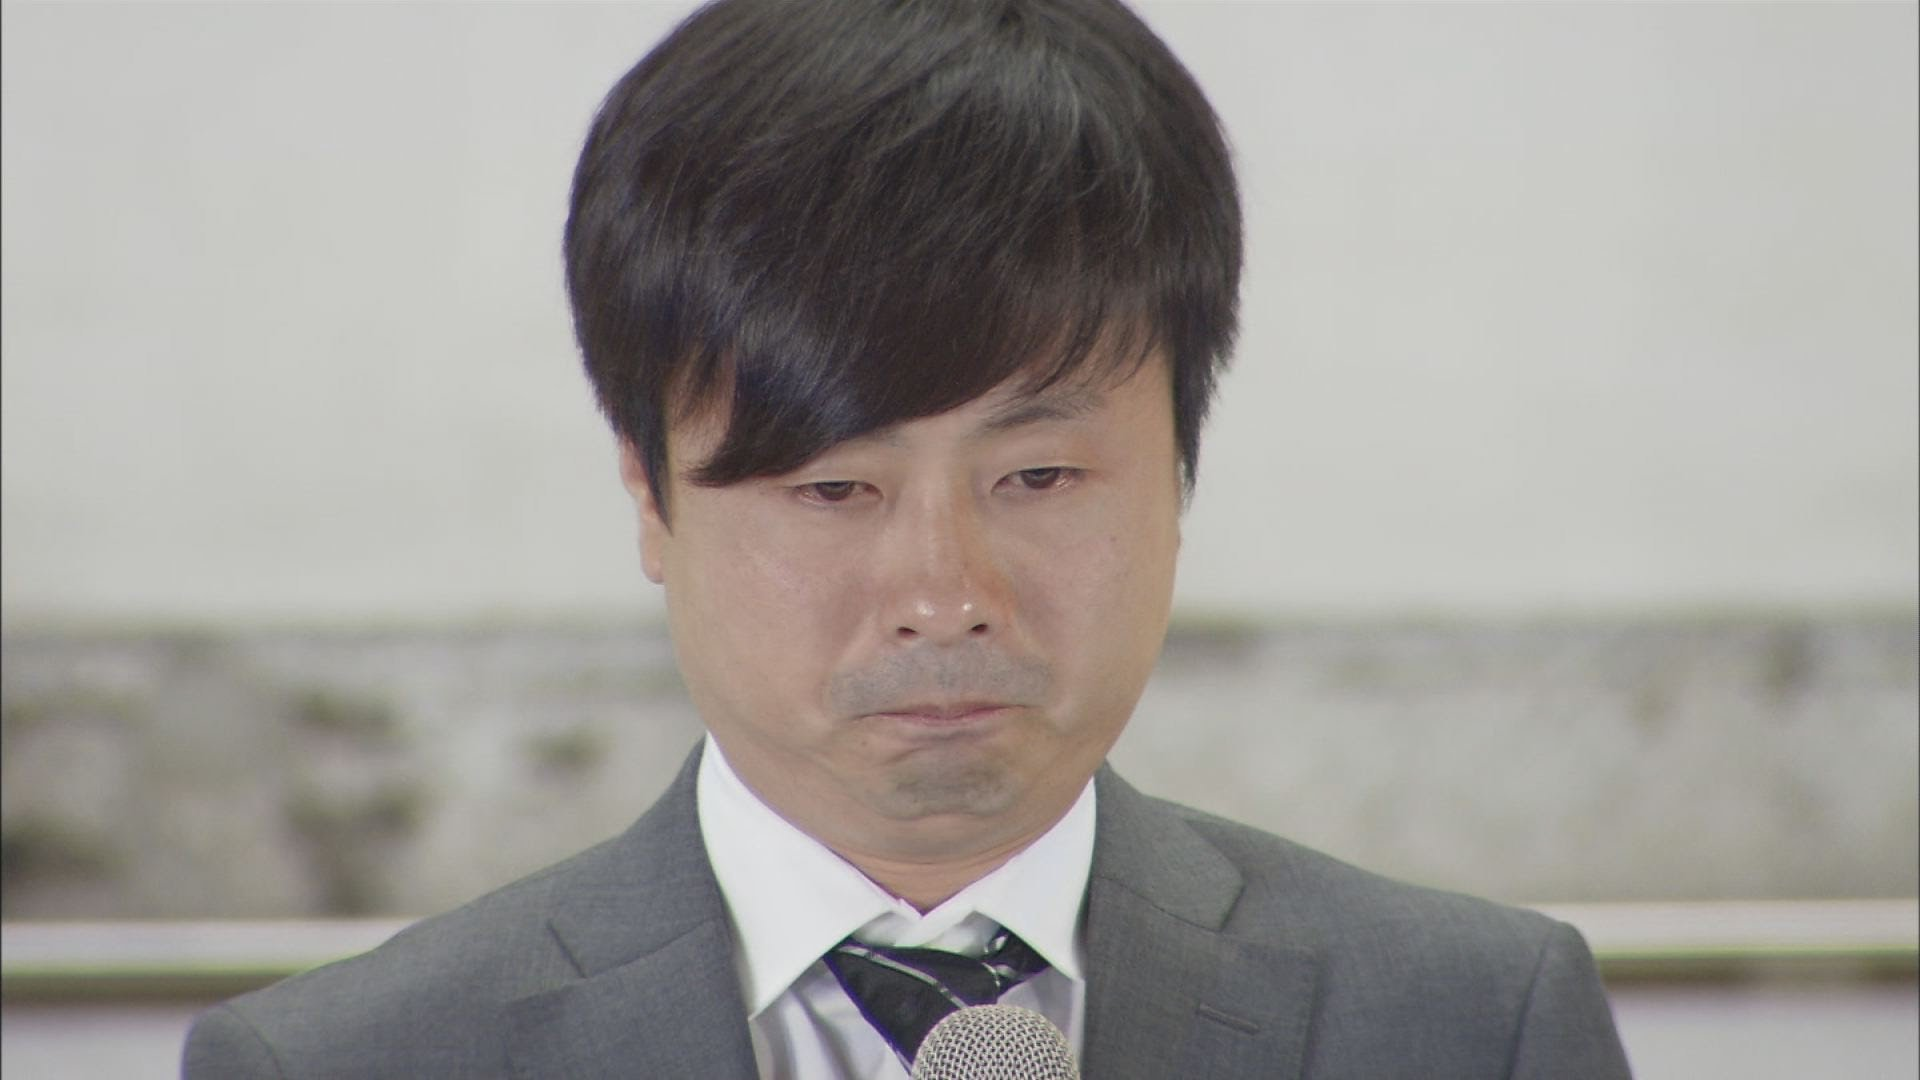 img 5a43a1c0bdd86.png?resize=1200,630 - 【北朝鮮】河本準一が芸能界から干された理由がヤバすぎた!【密入国】